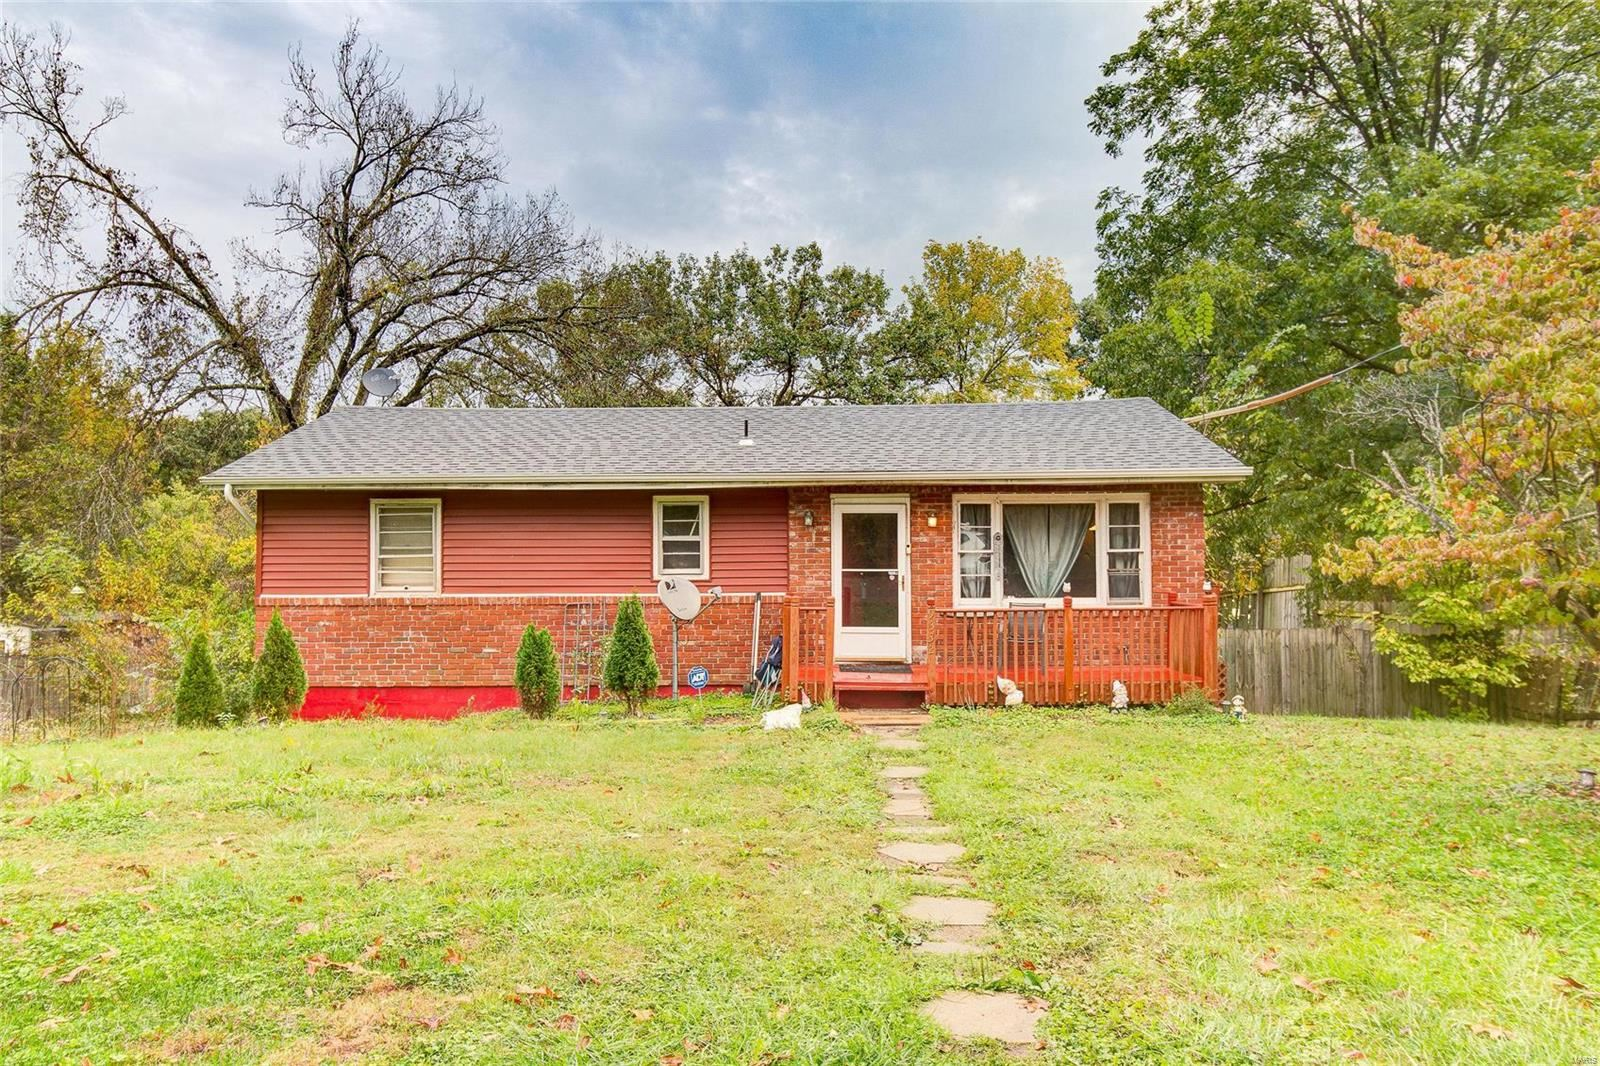 9332 Lakeview, Pevely, MO 63070 - MLS#: 21051517